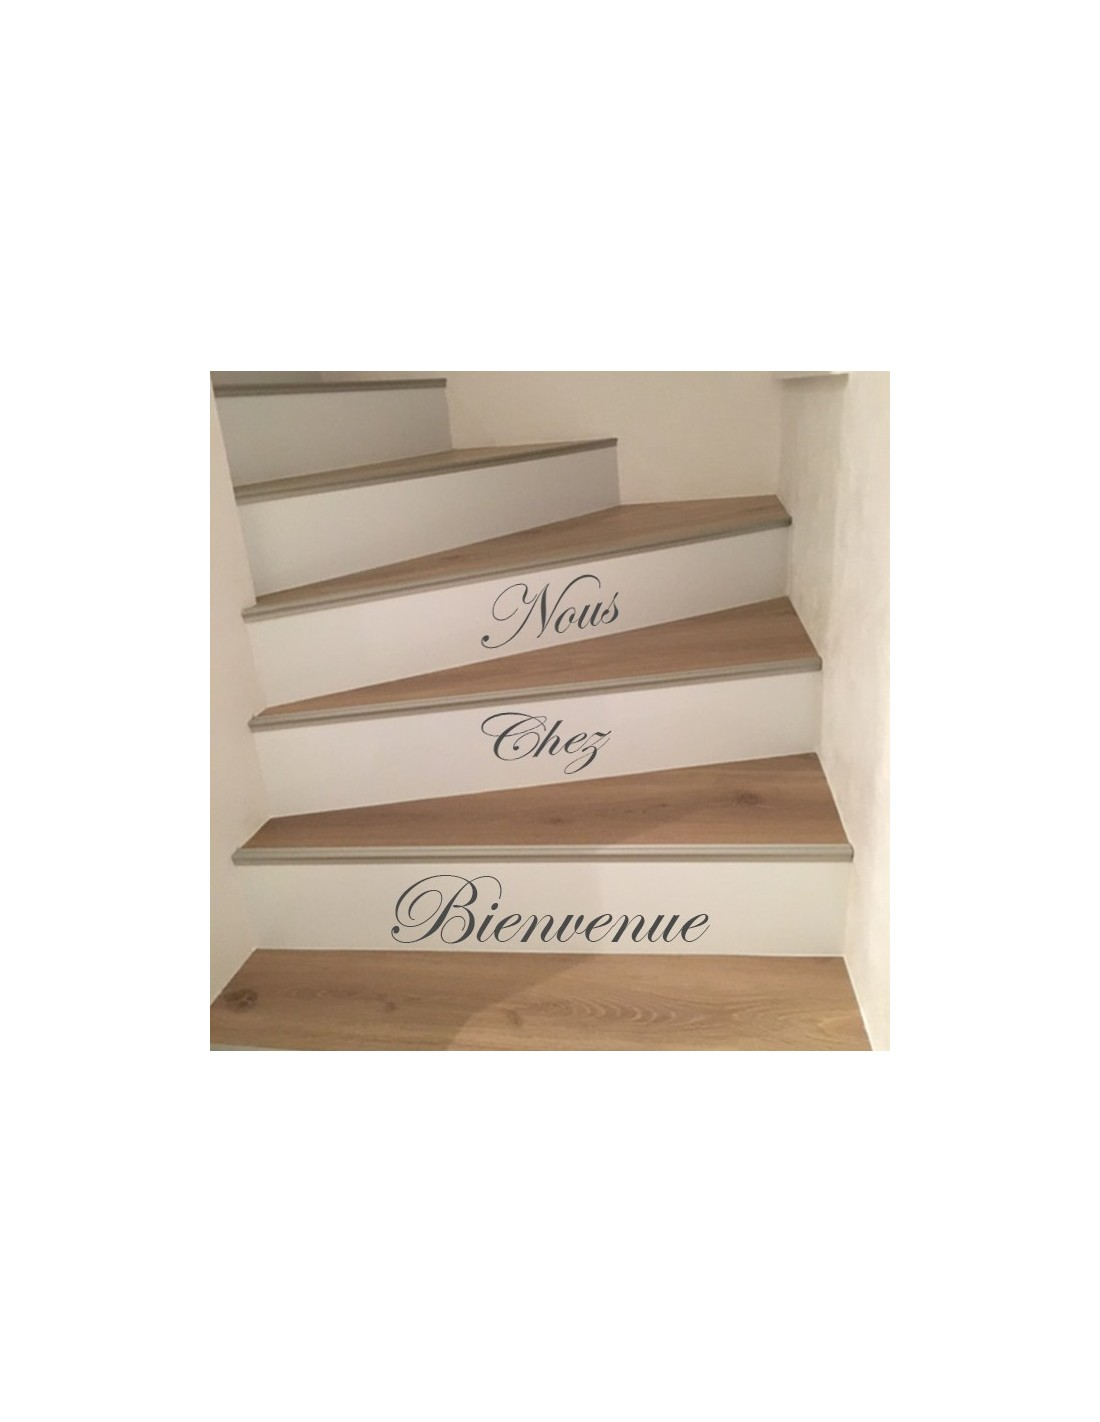 kit 5 stickers personnalis s pour contremarche d 39 escalier. Black Bedroom Furniture Sets. Home Design Ideas